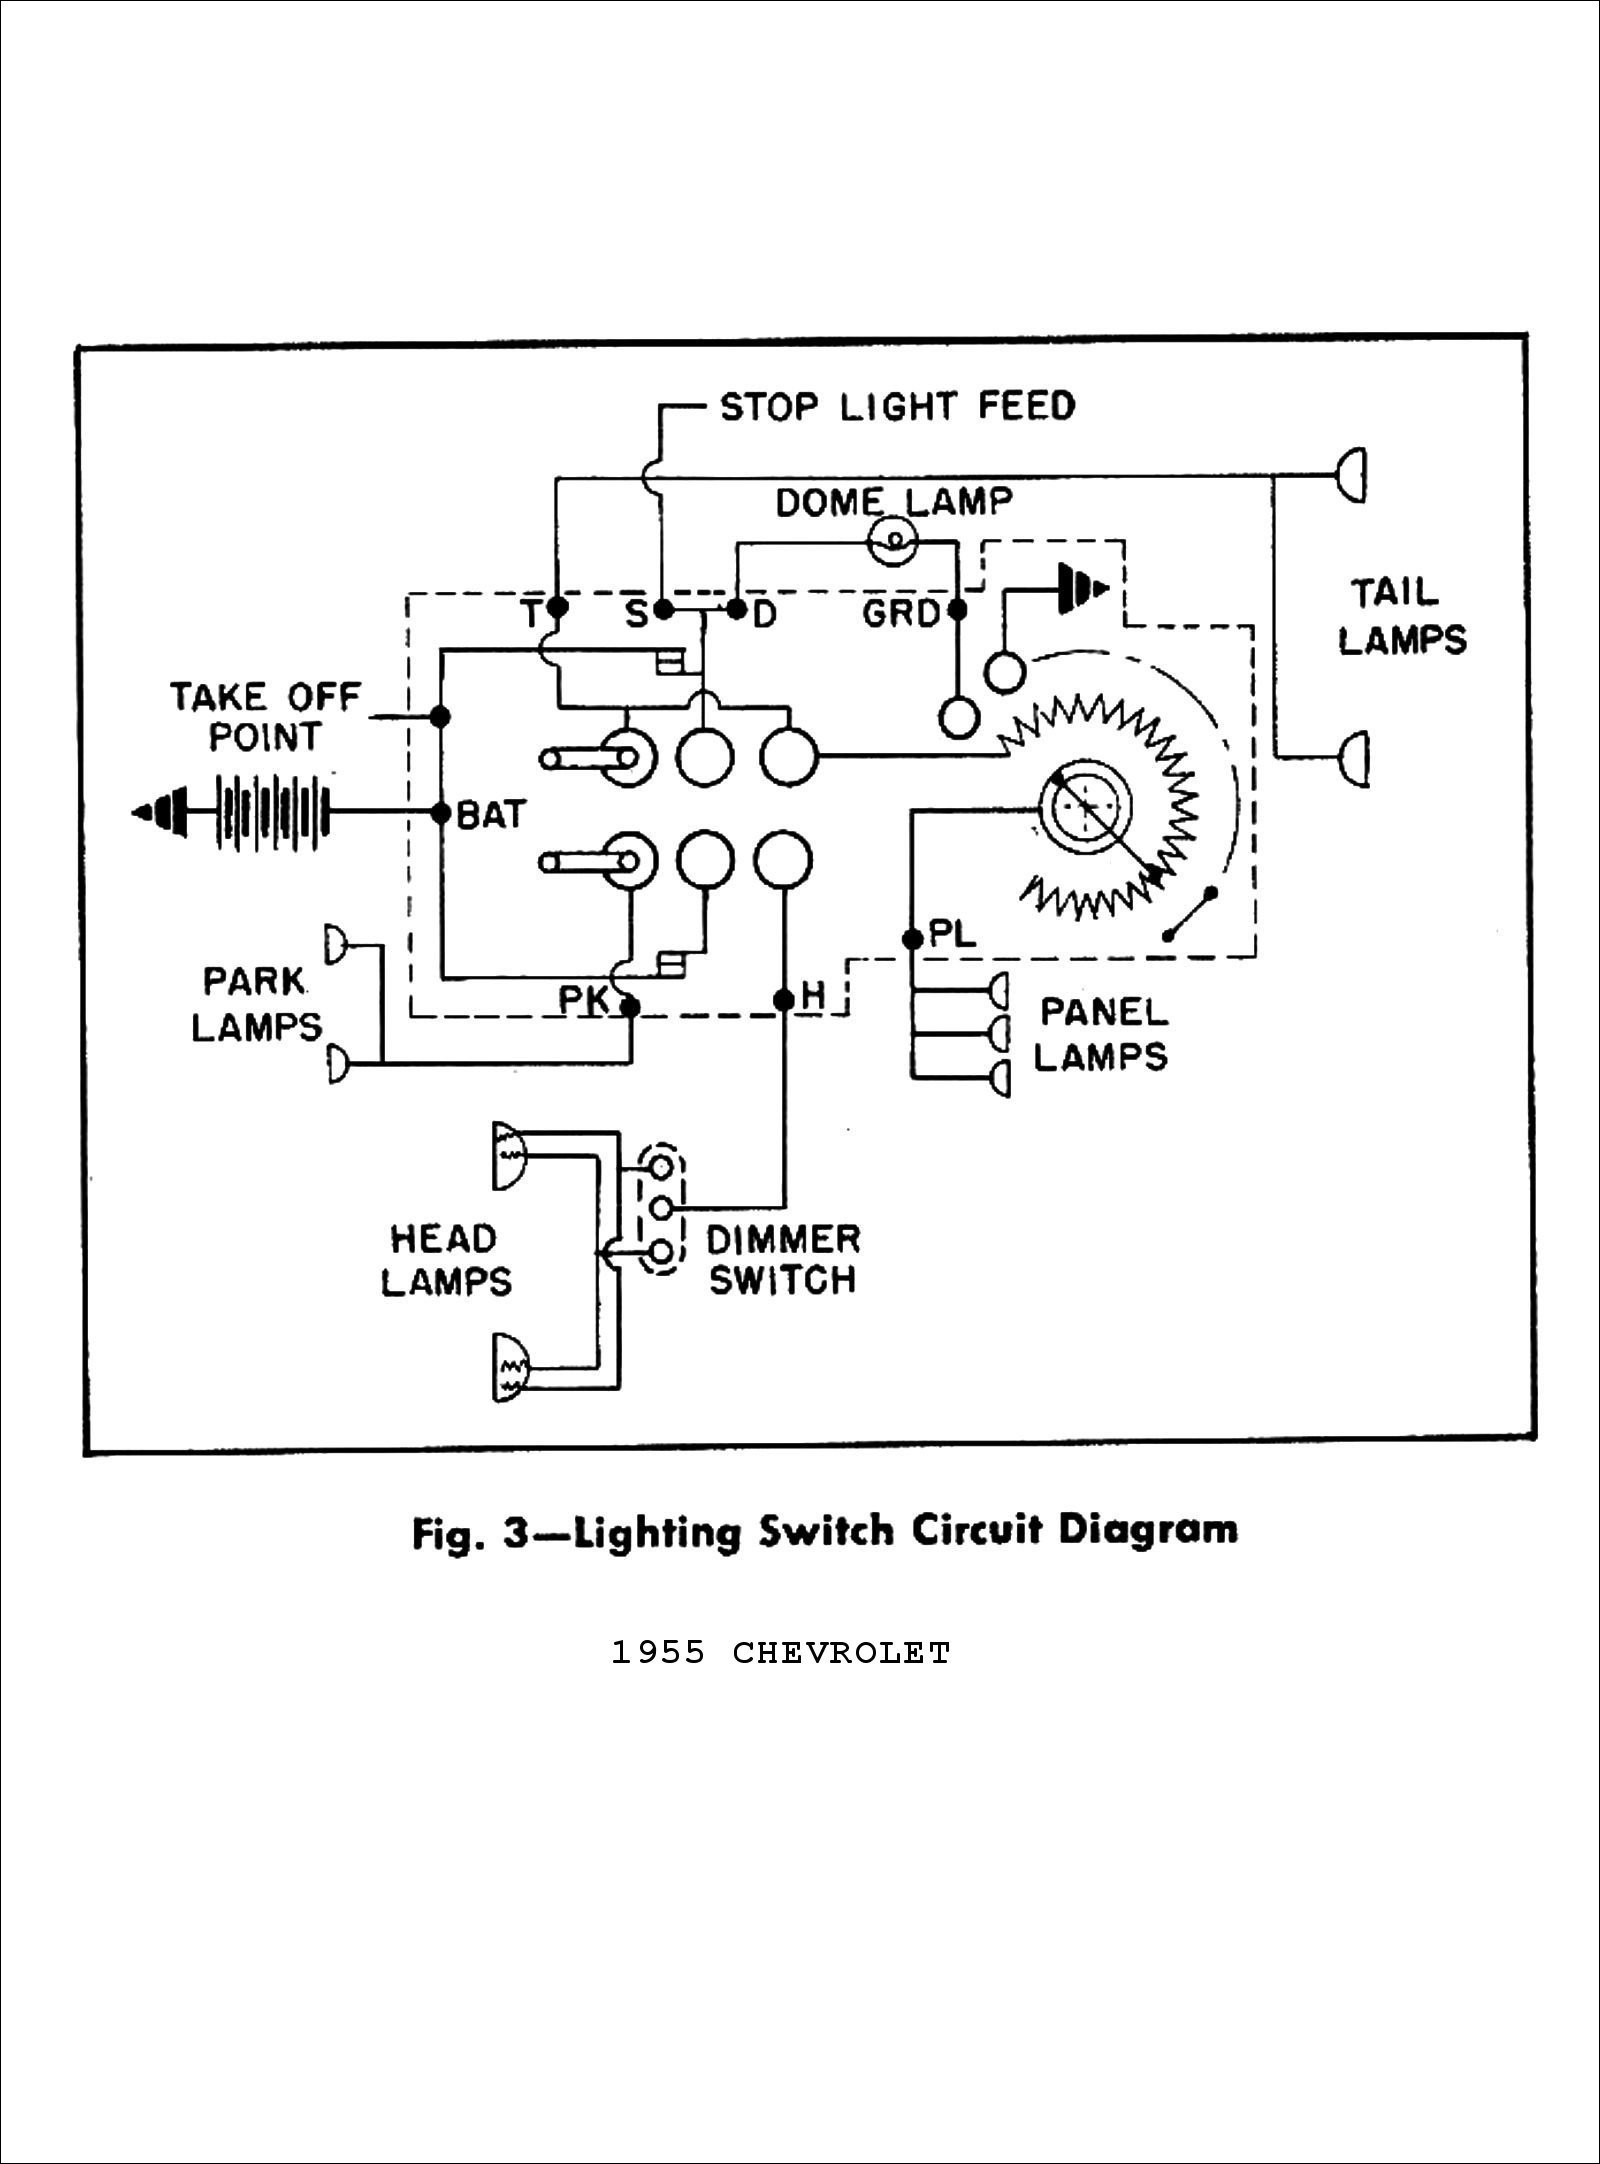 1955 Chevy Ignition Switch Wiring Diagram Fresh O D Not Working Not